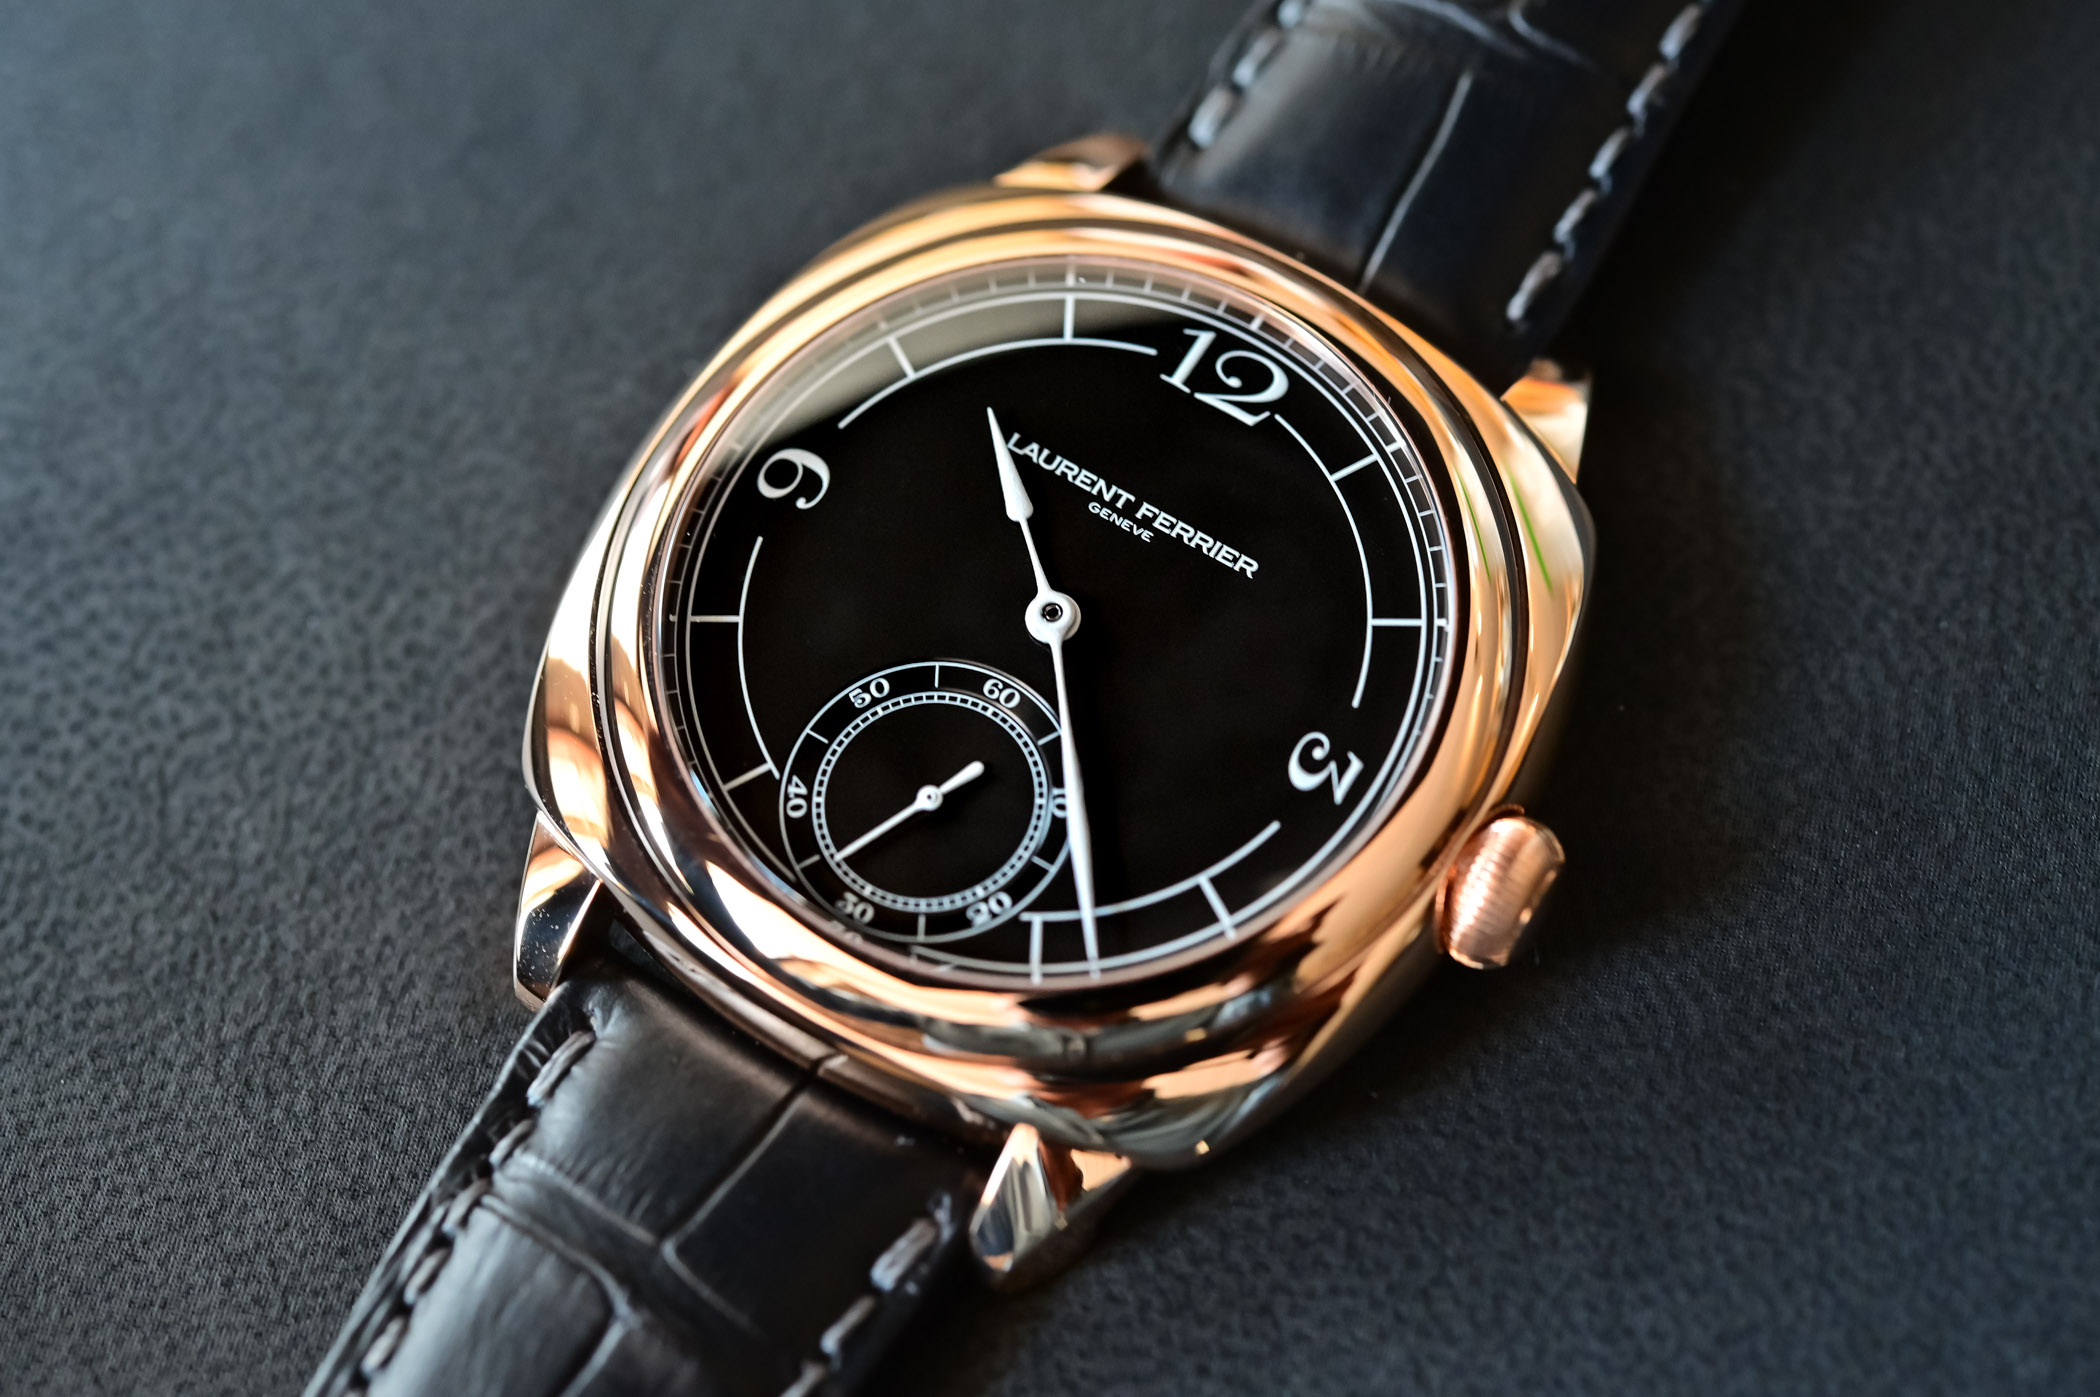 2021 Laurent Ferrier Square Micro-Rotor Retro Watches - Hands-on - 11